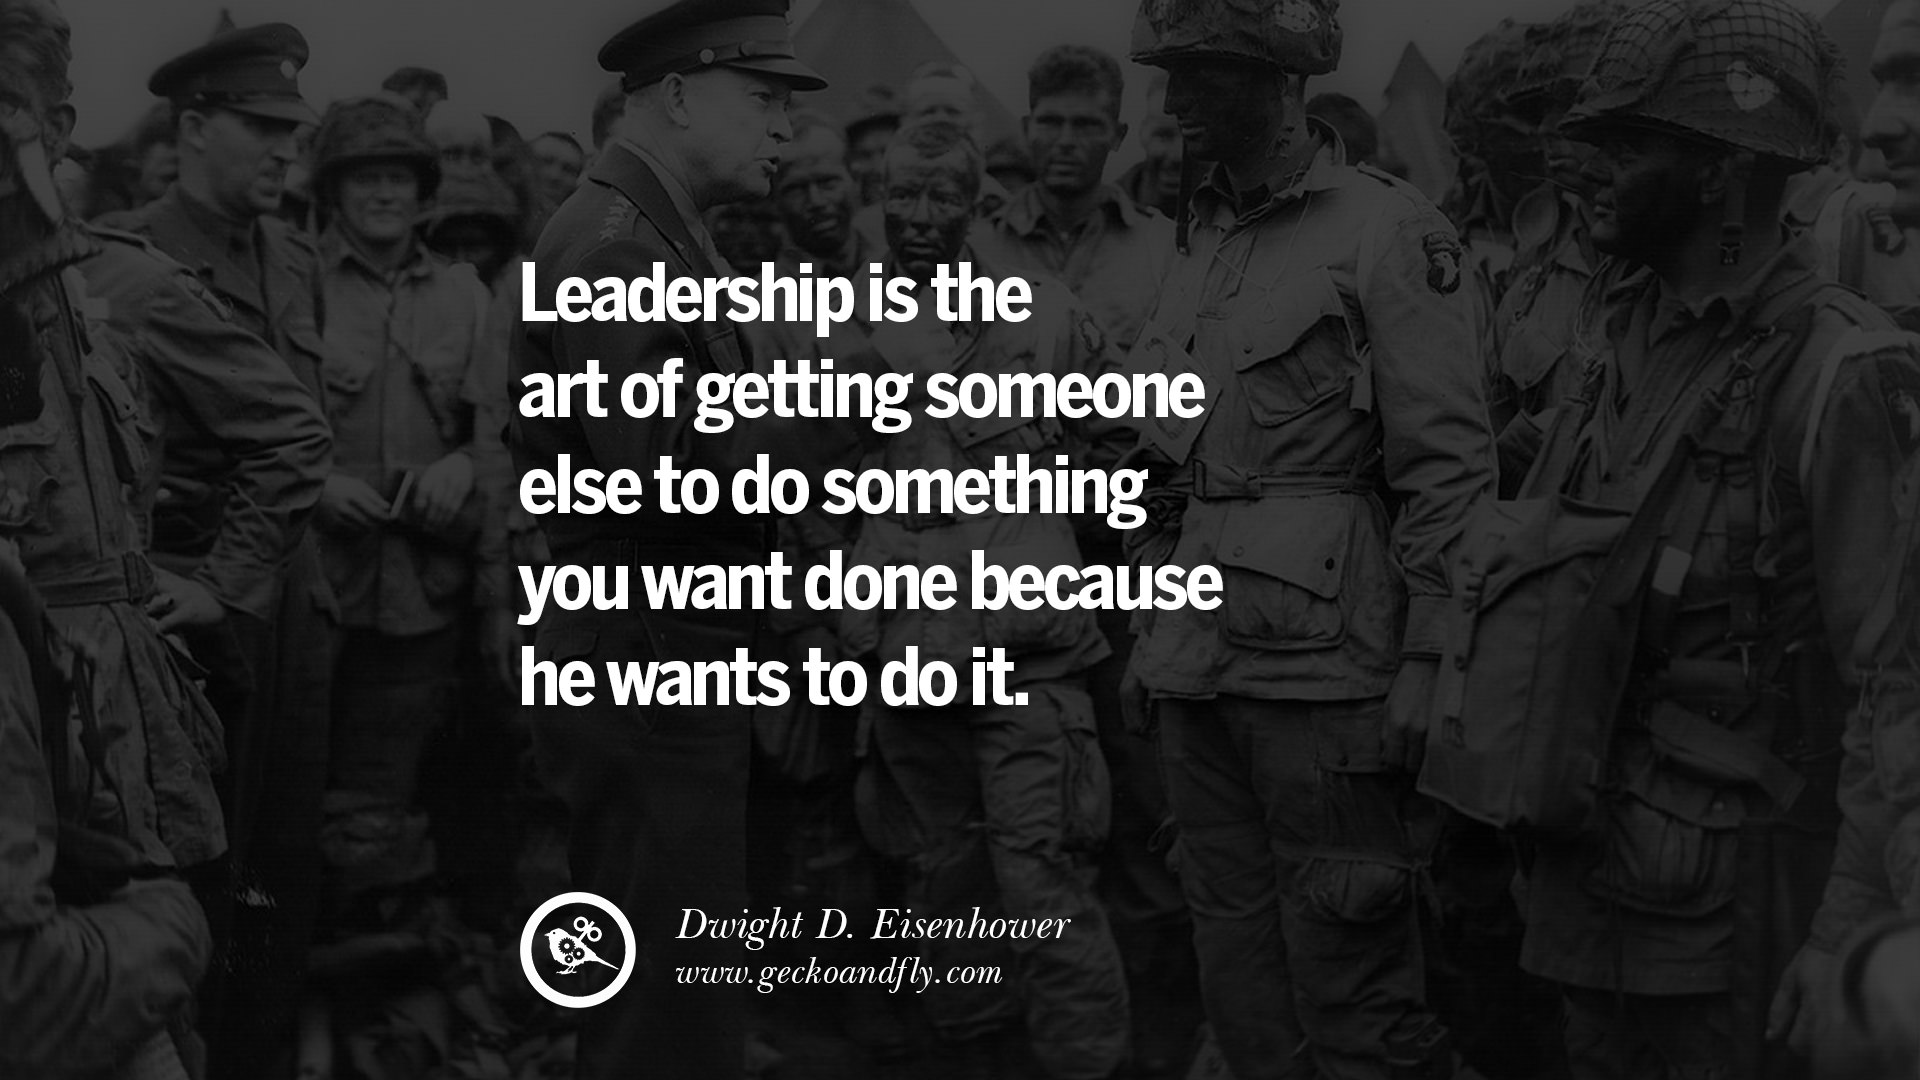 leadership vs management essay uplifting and motivational quotes  uplifting and motivational quotes on management leadership leadership is the art of getting someone else to essay vs paper